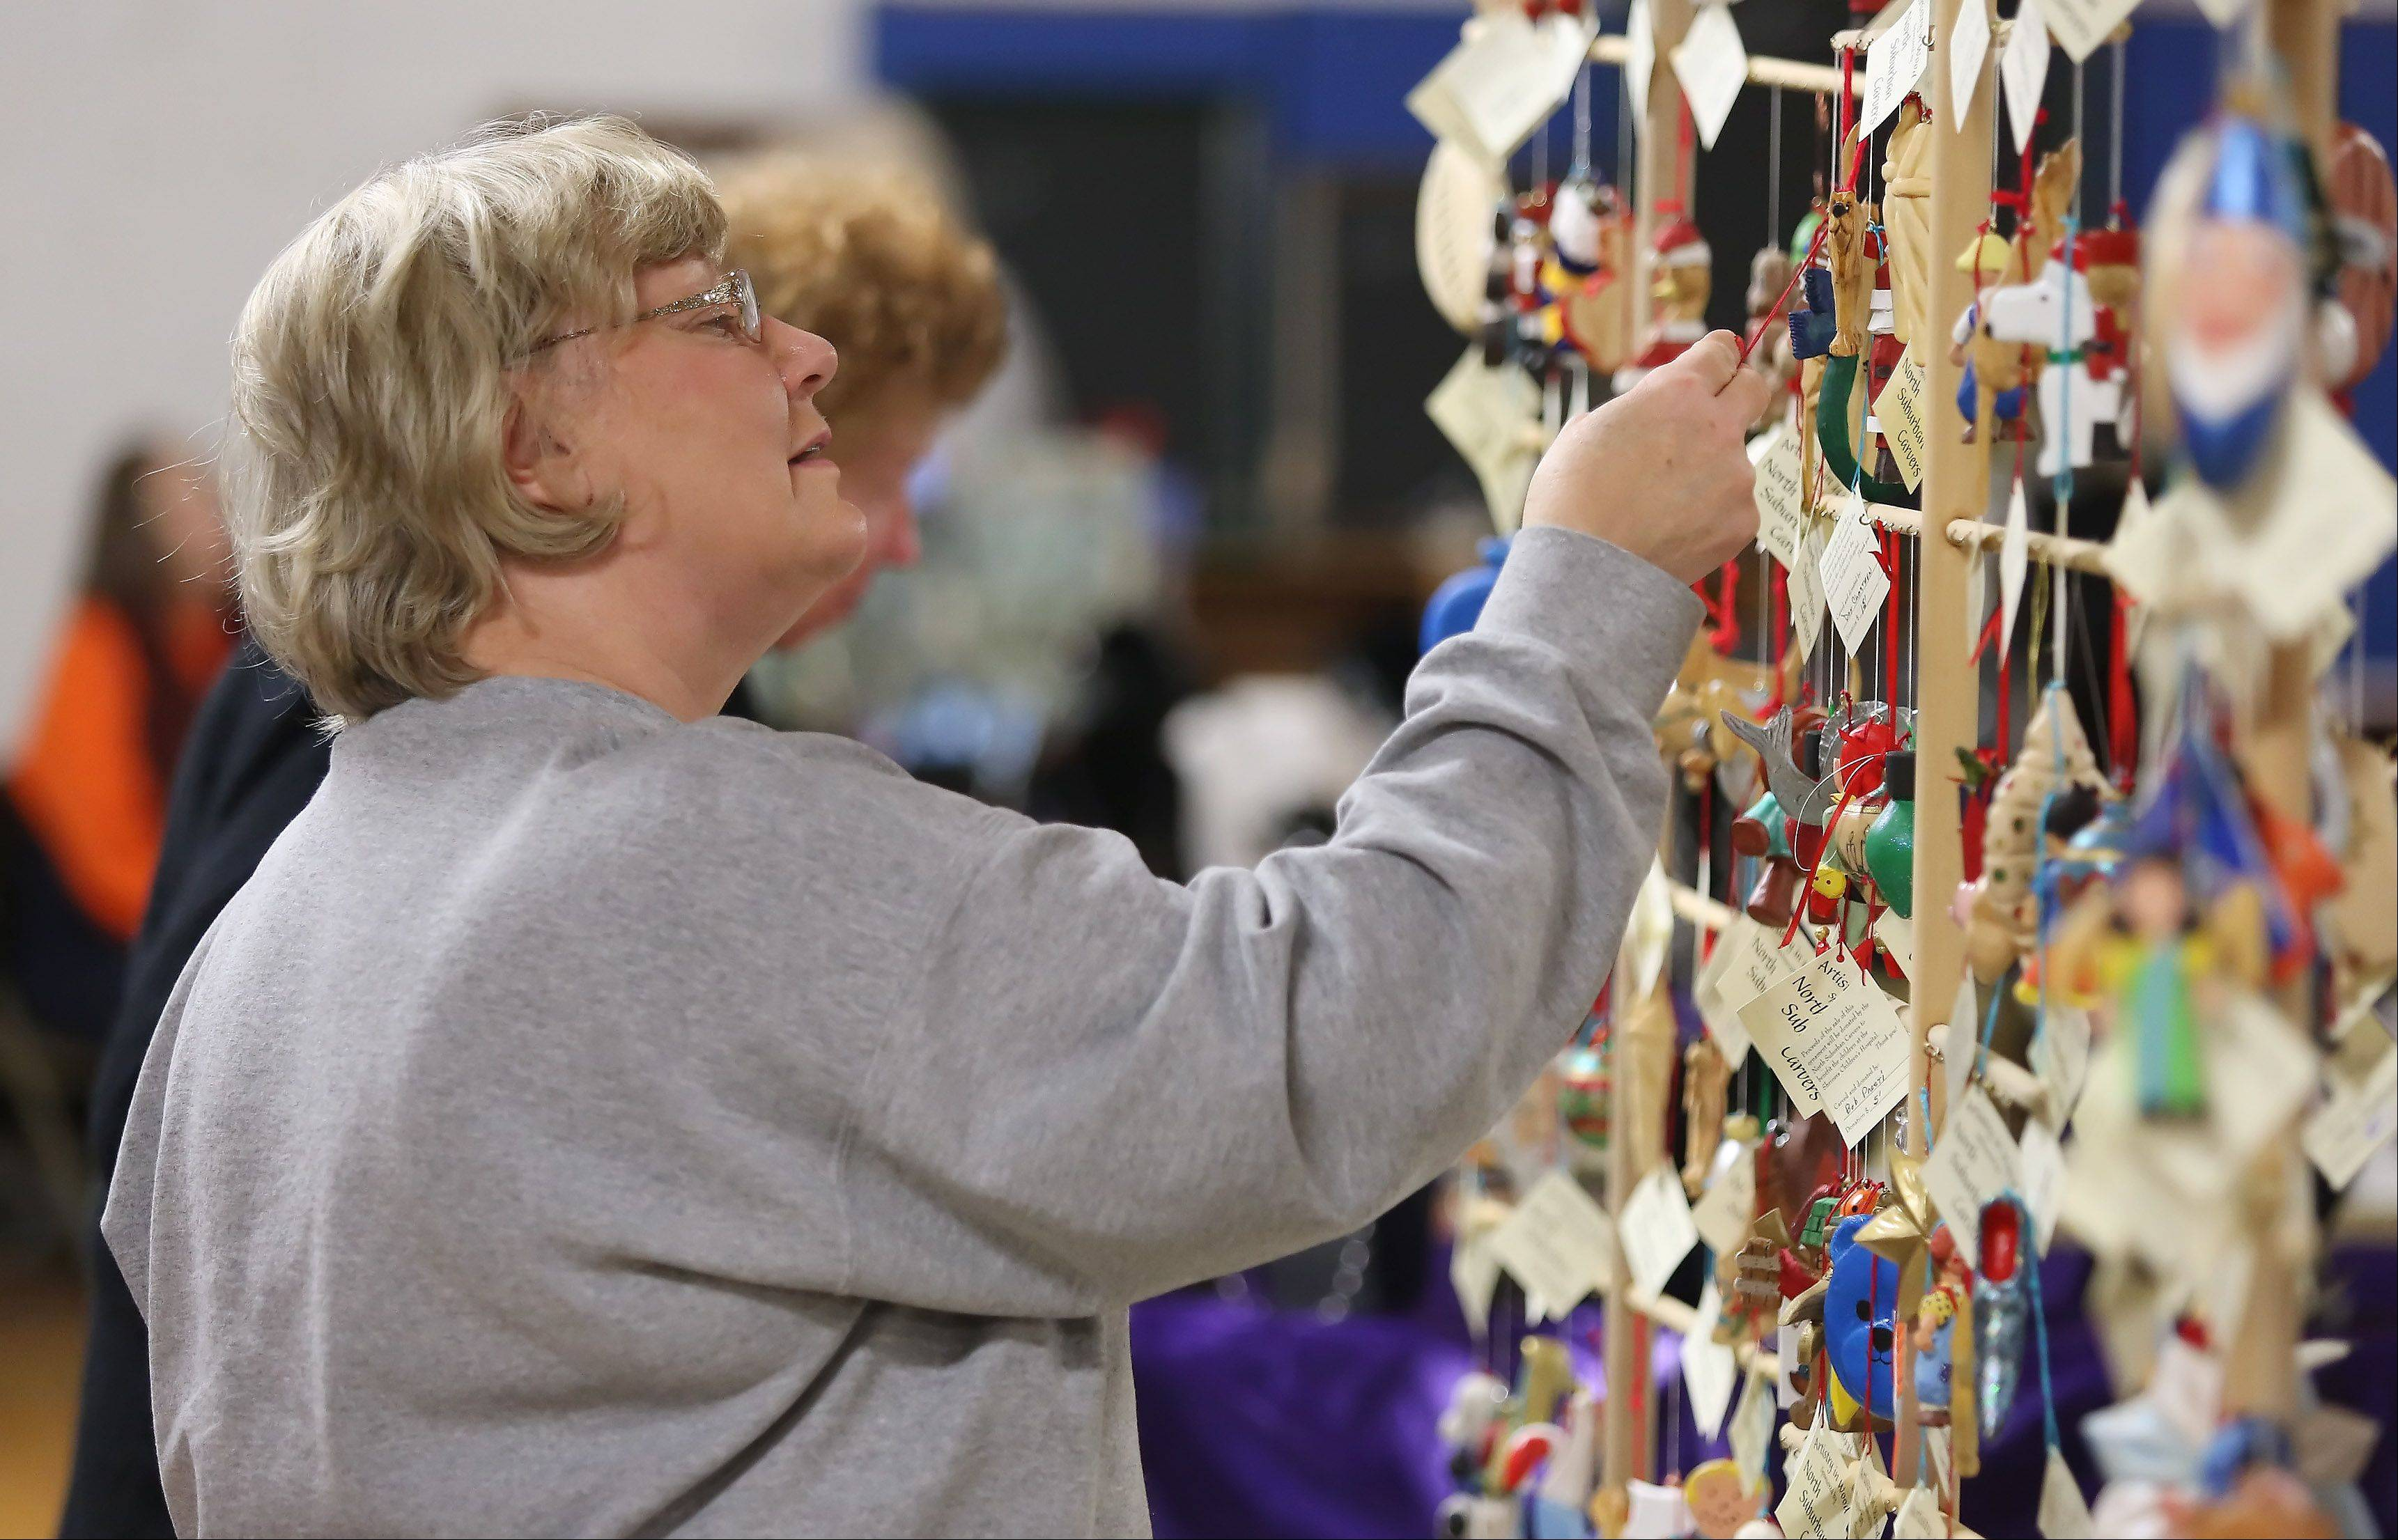 Libertyville resident Sylvia LeJeune looks at ornaments made by North Suburban Carvers during Island Lake�s 27th annual Holiday Craft Fair Sunday at the Island Lake Village Hall. The fair featured almost 45 vendors offering crafts, jewelry, gifts, clothing and more. On Sunday, Santa Claus met with children and adults alike to spread holiday cheer.